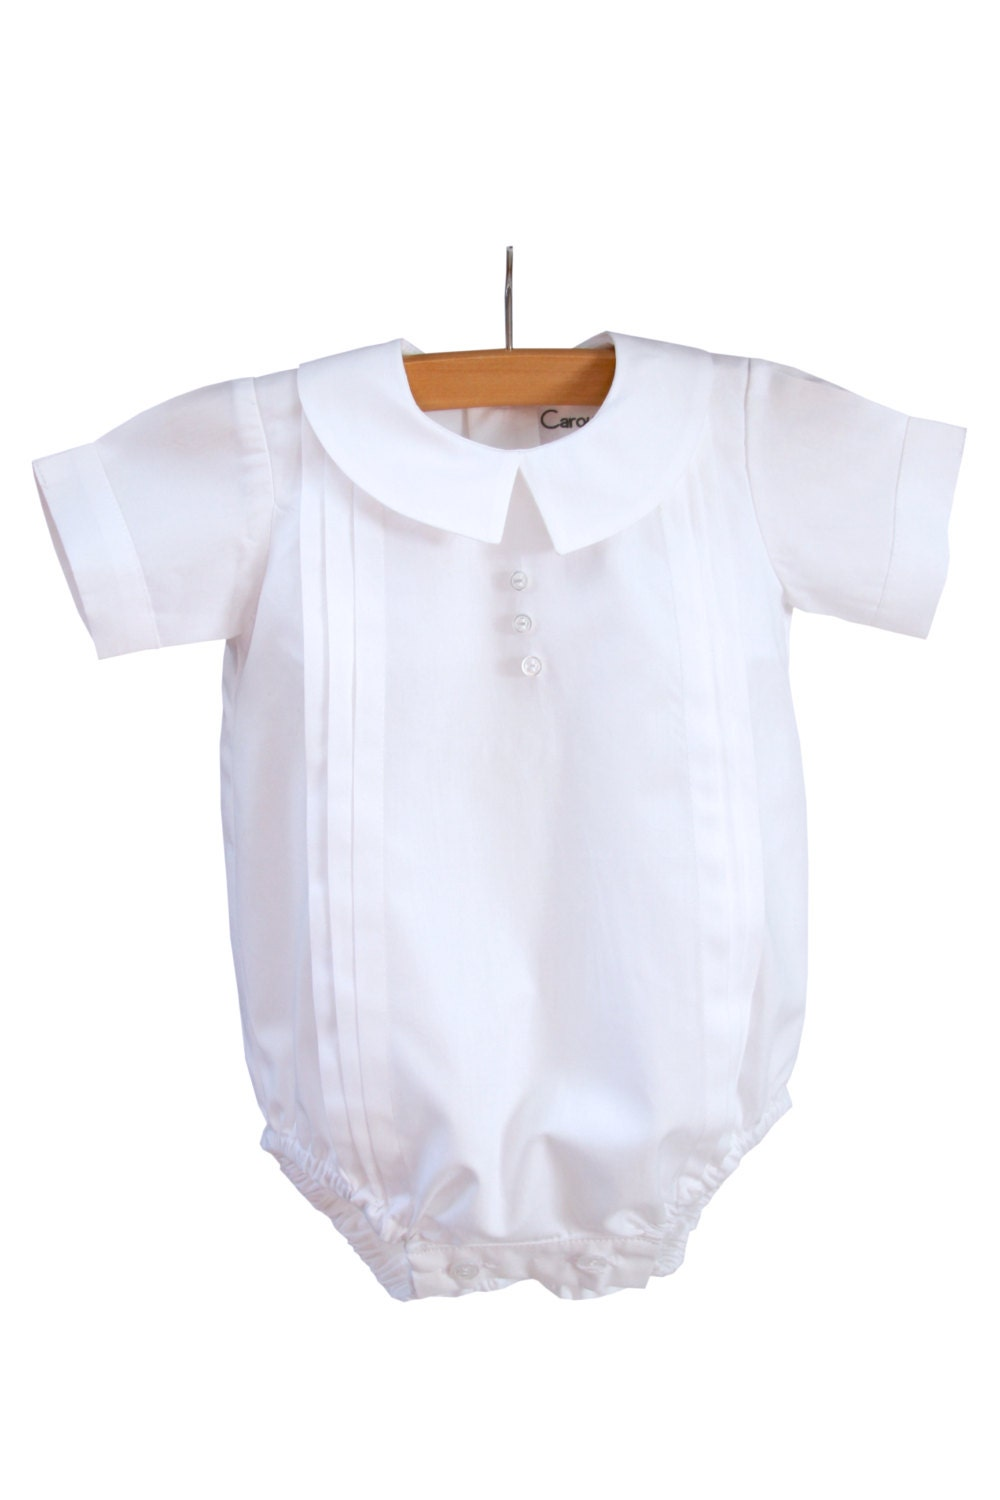 david christening dedication boys outfit bubble romper simply